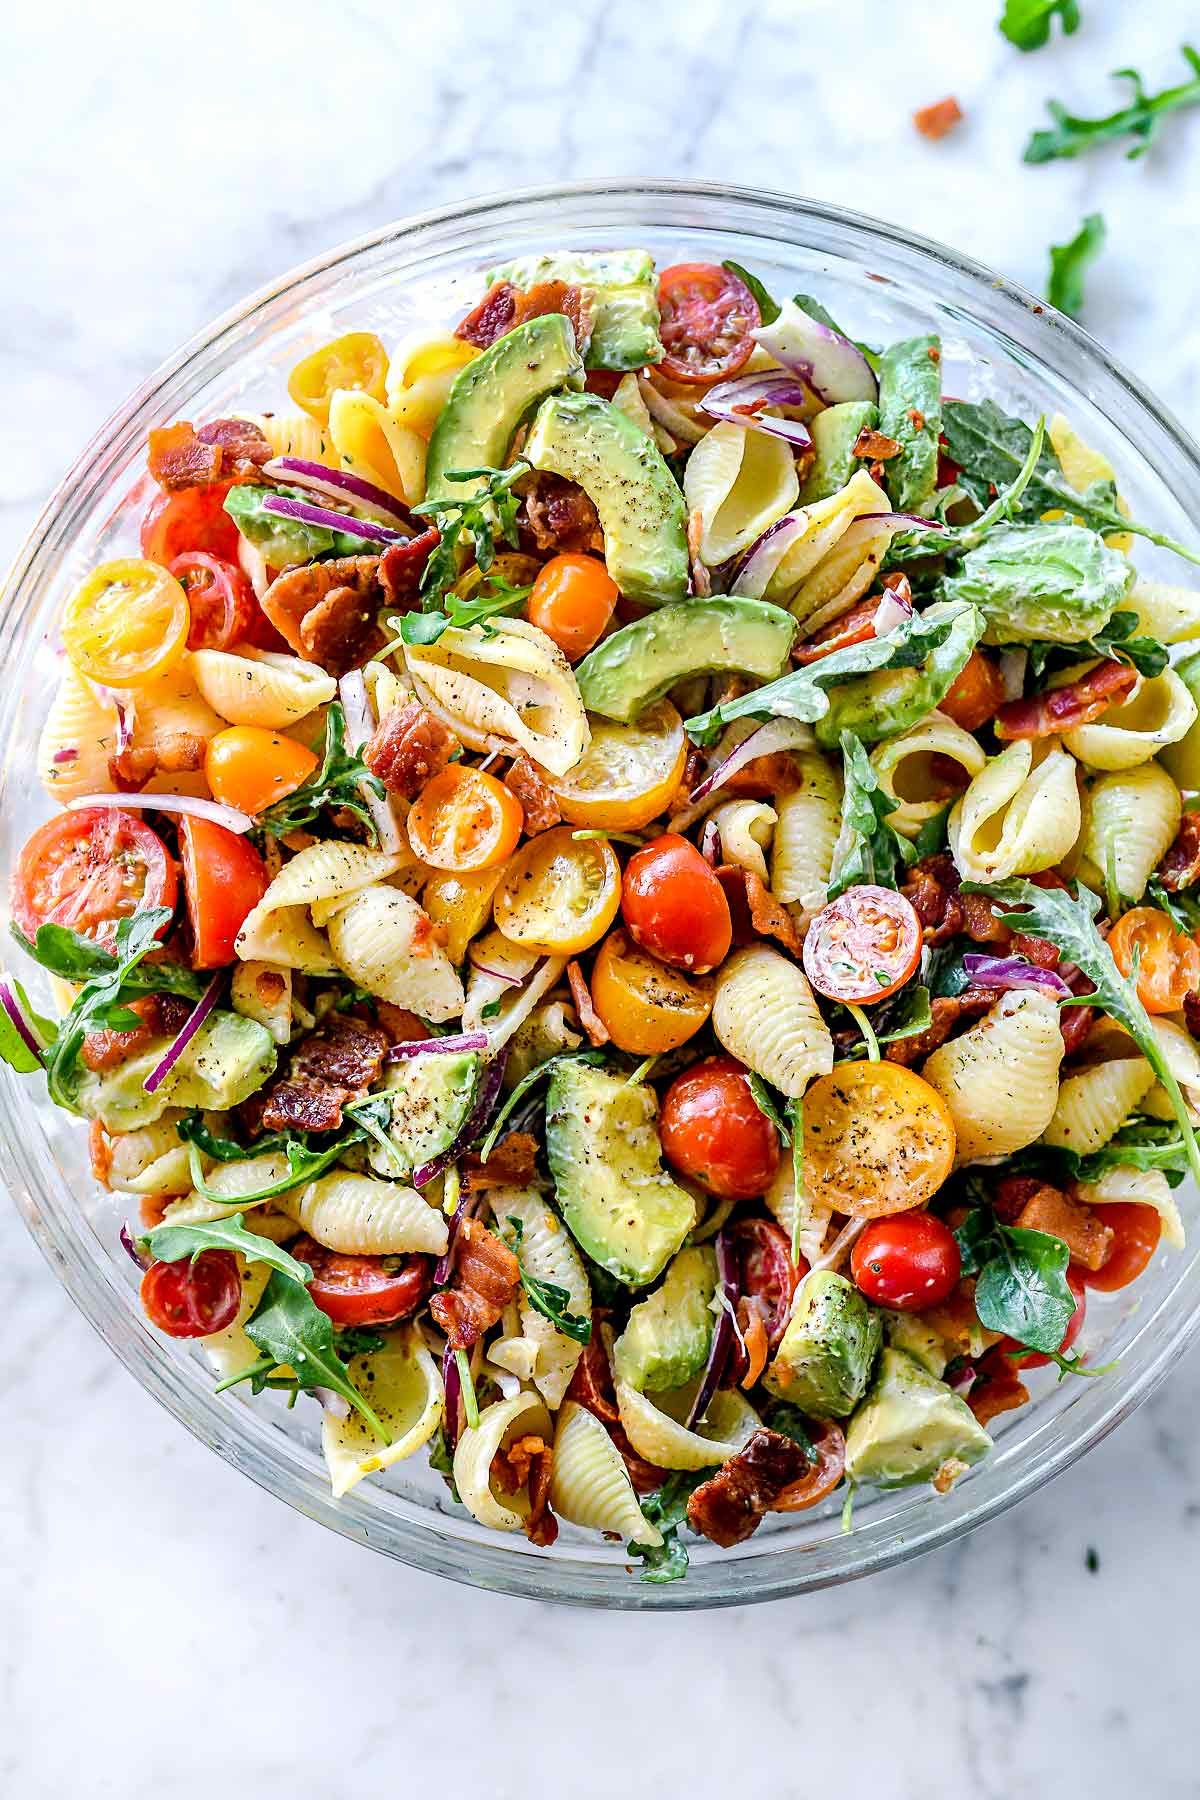 Blt Pasta Salad With Avocado Recipe Foodiecrush Com